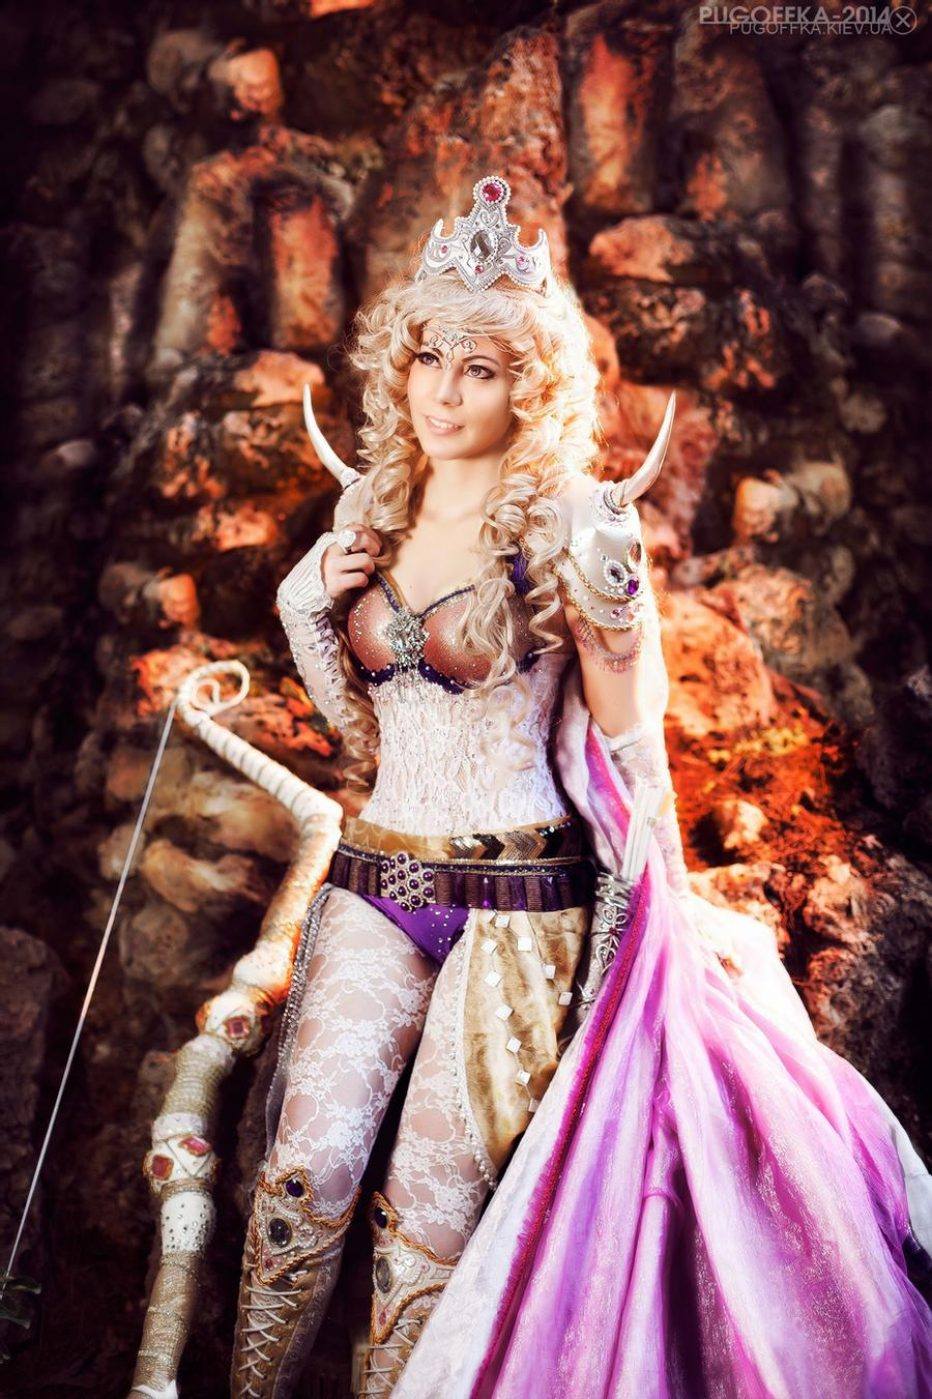 Final-Fantasy-IV-Rosa-Farrell-Cosplay-Gamers-Heroes-1.jpg